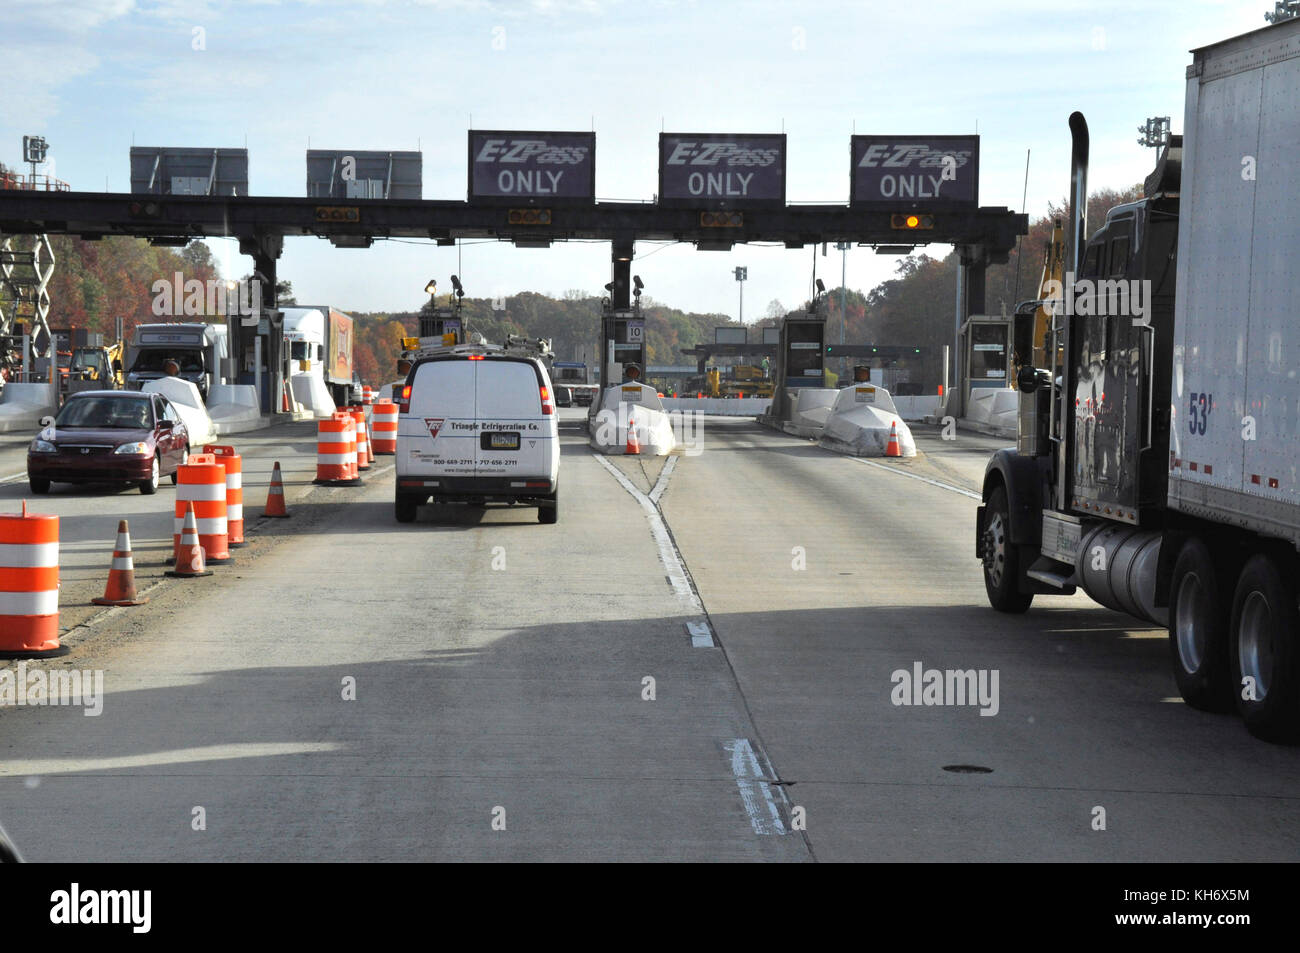 Toll Booth near New York - Stock Image